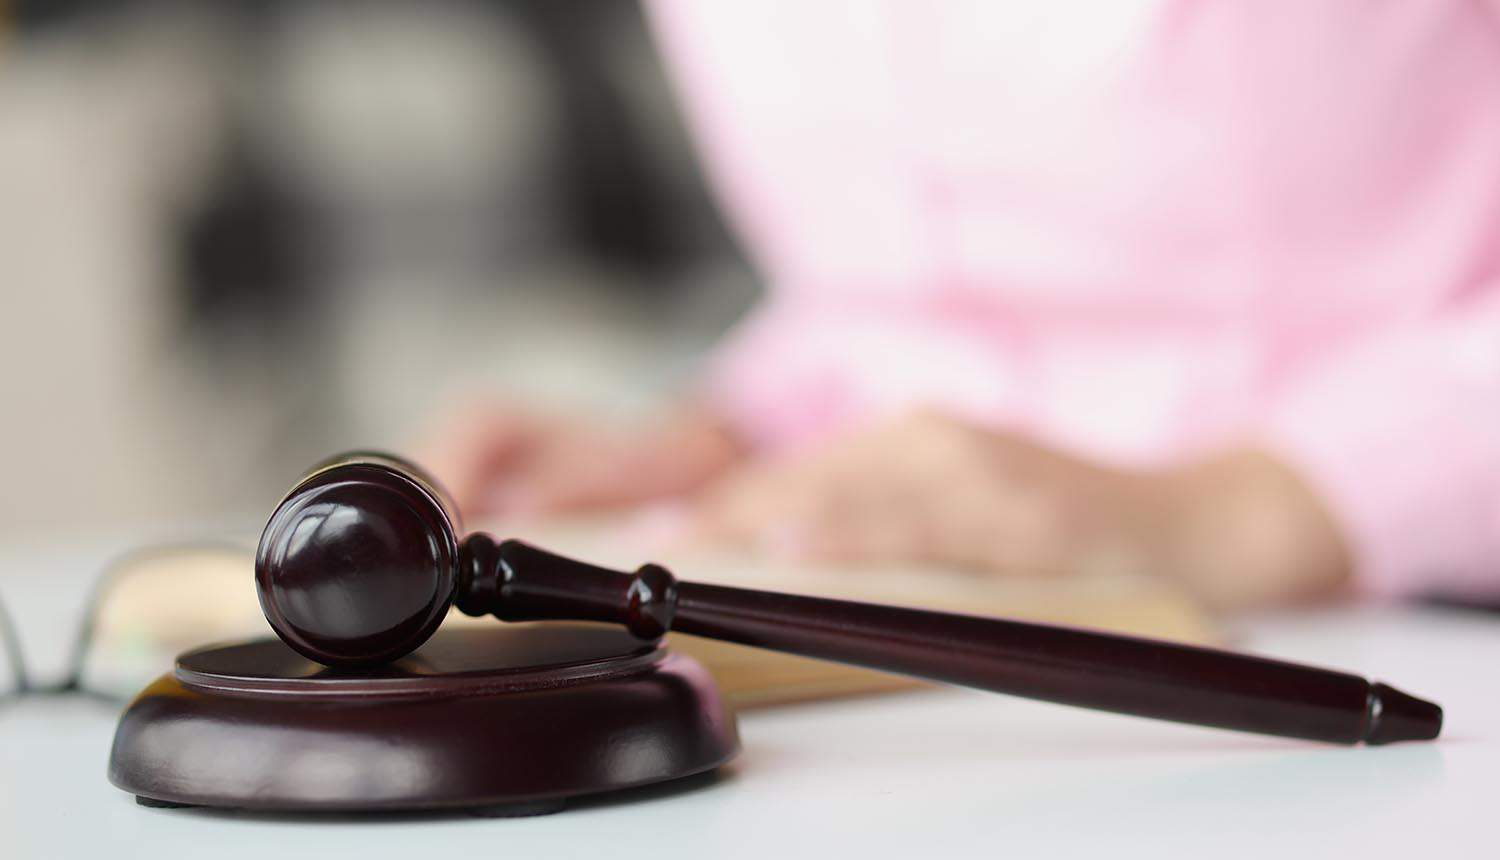 Judge wooden gavel lying on table against background of woman showing challenge of privacy laws